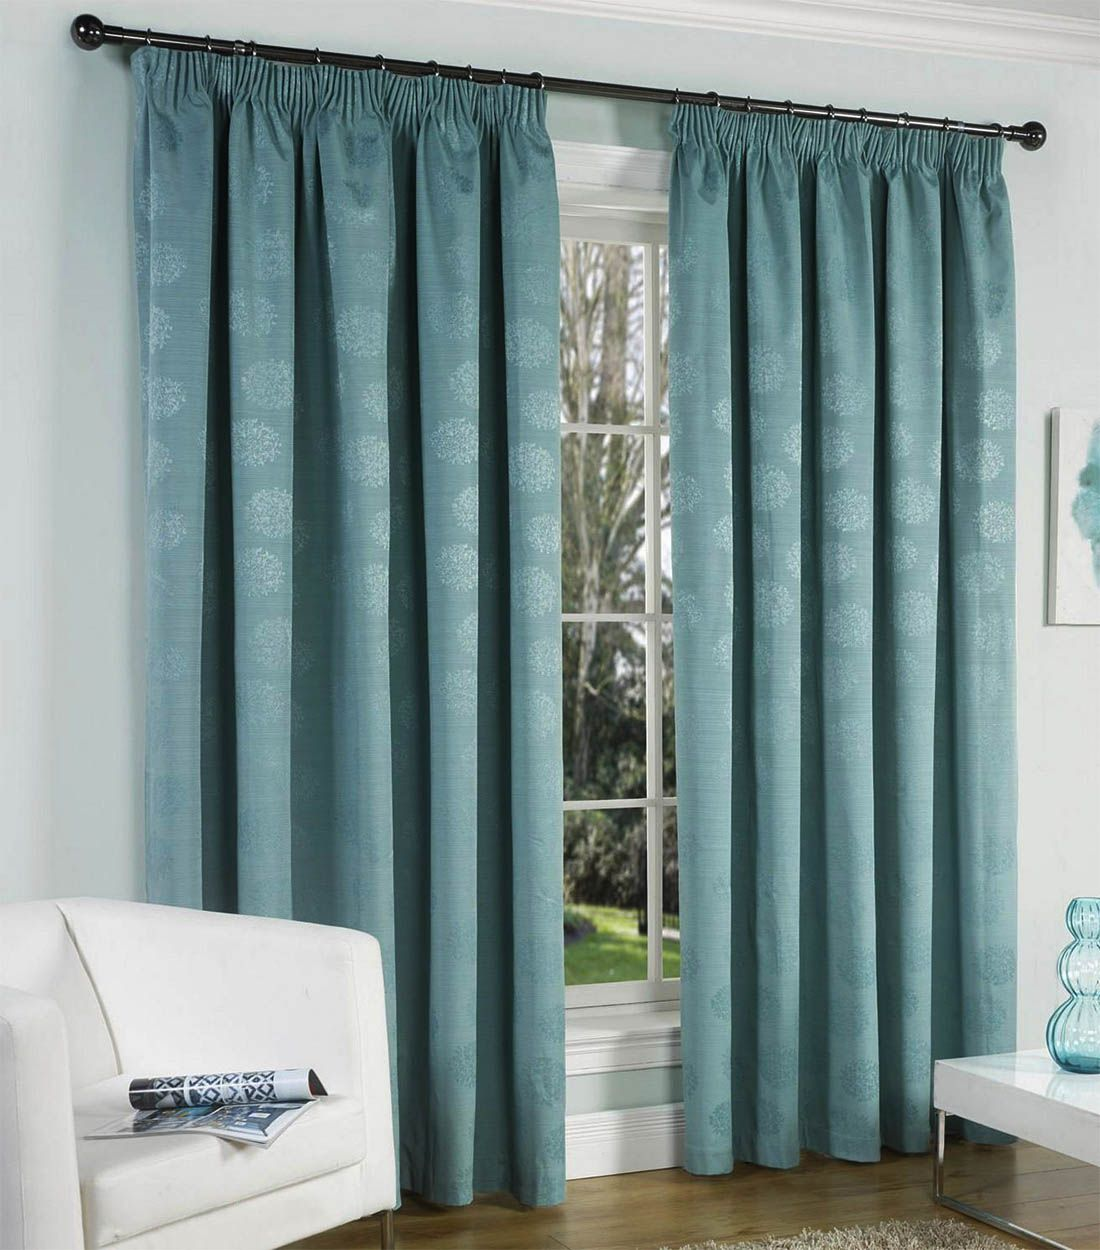 curtain models blinds latest fashion trends in 2018 decor rh pinterest com